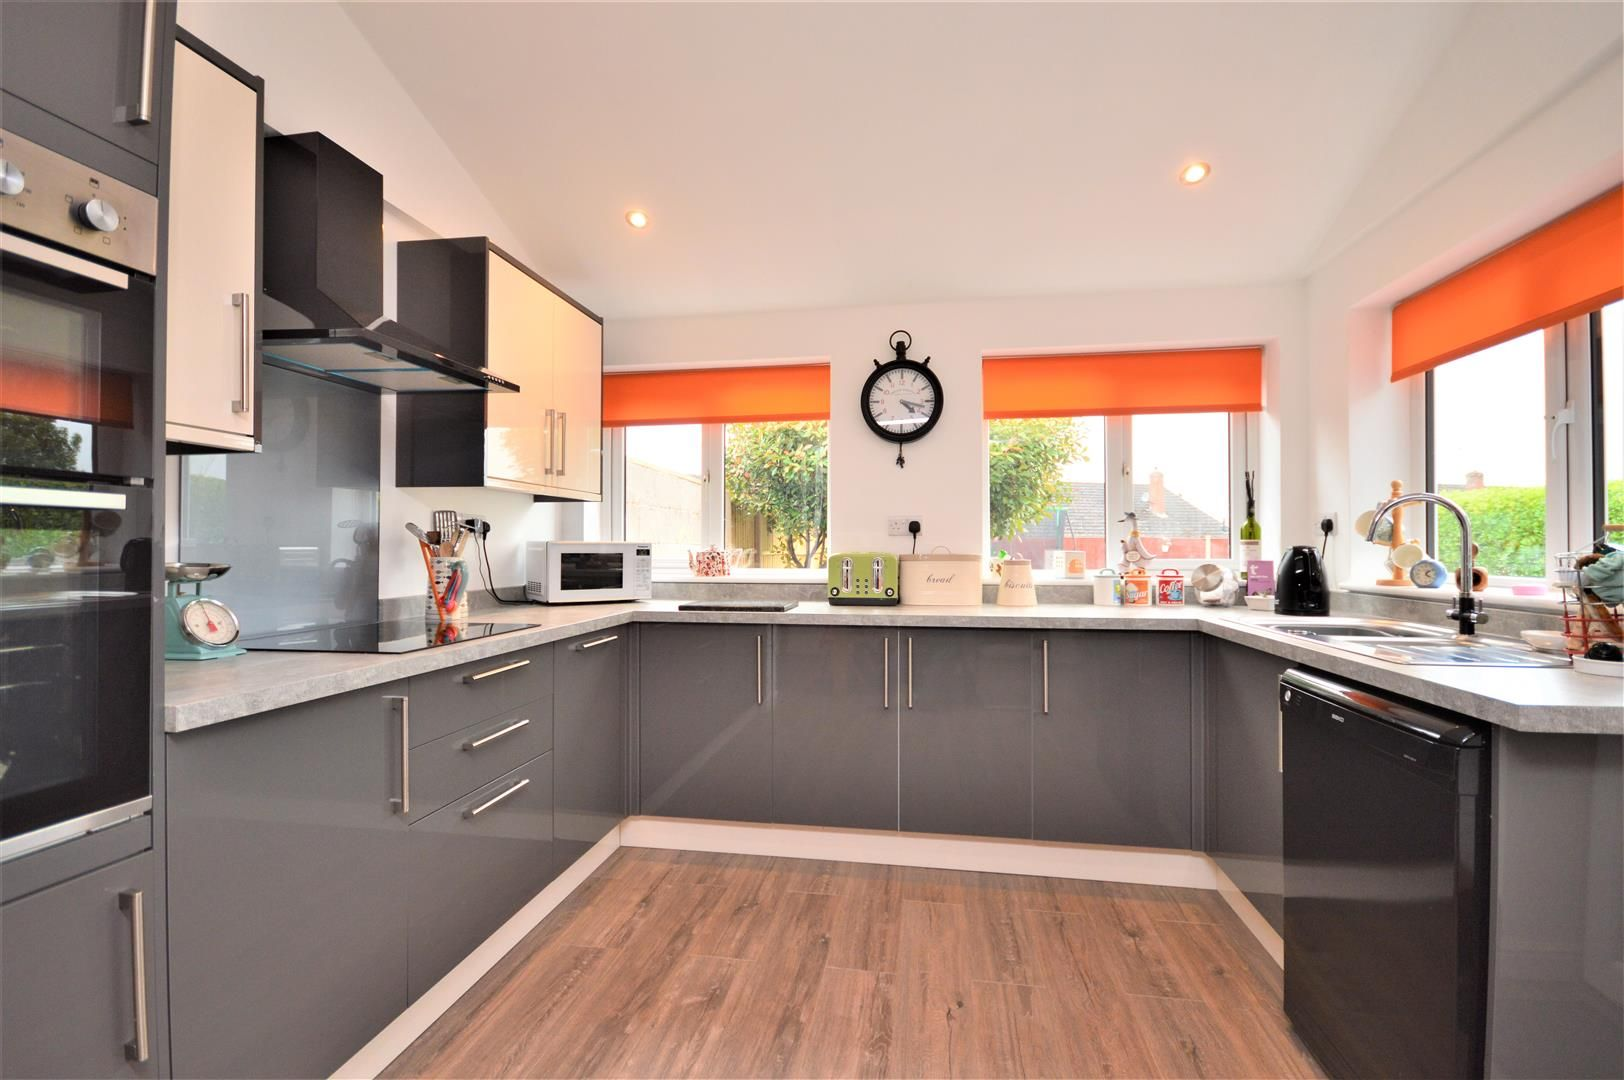 4 bed semi-detached for sale in Clehonger 5